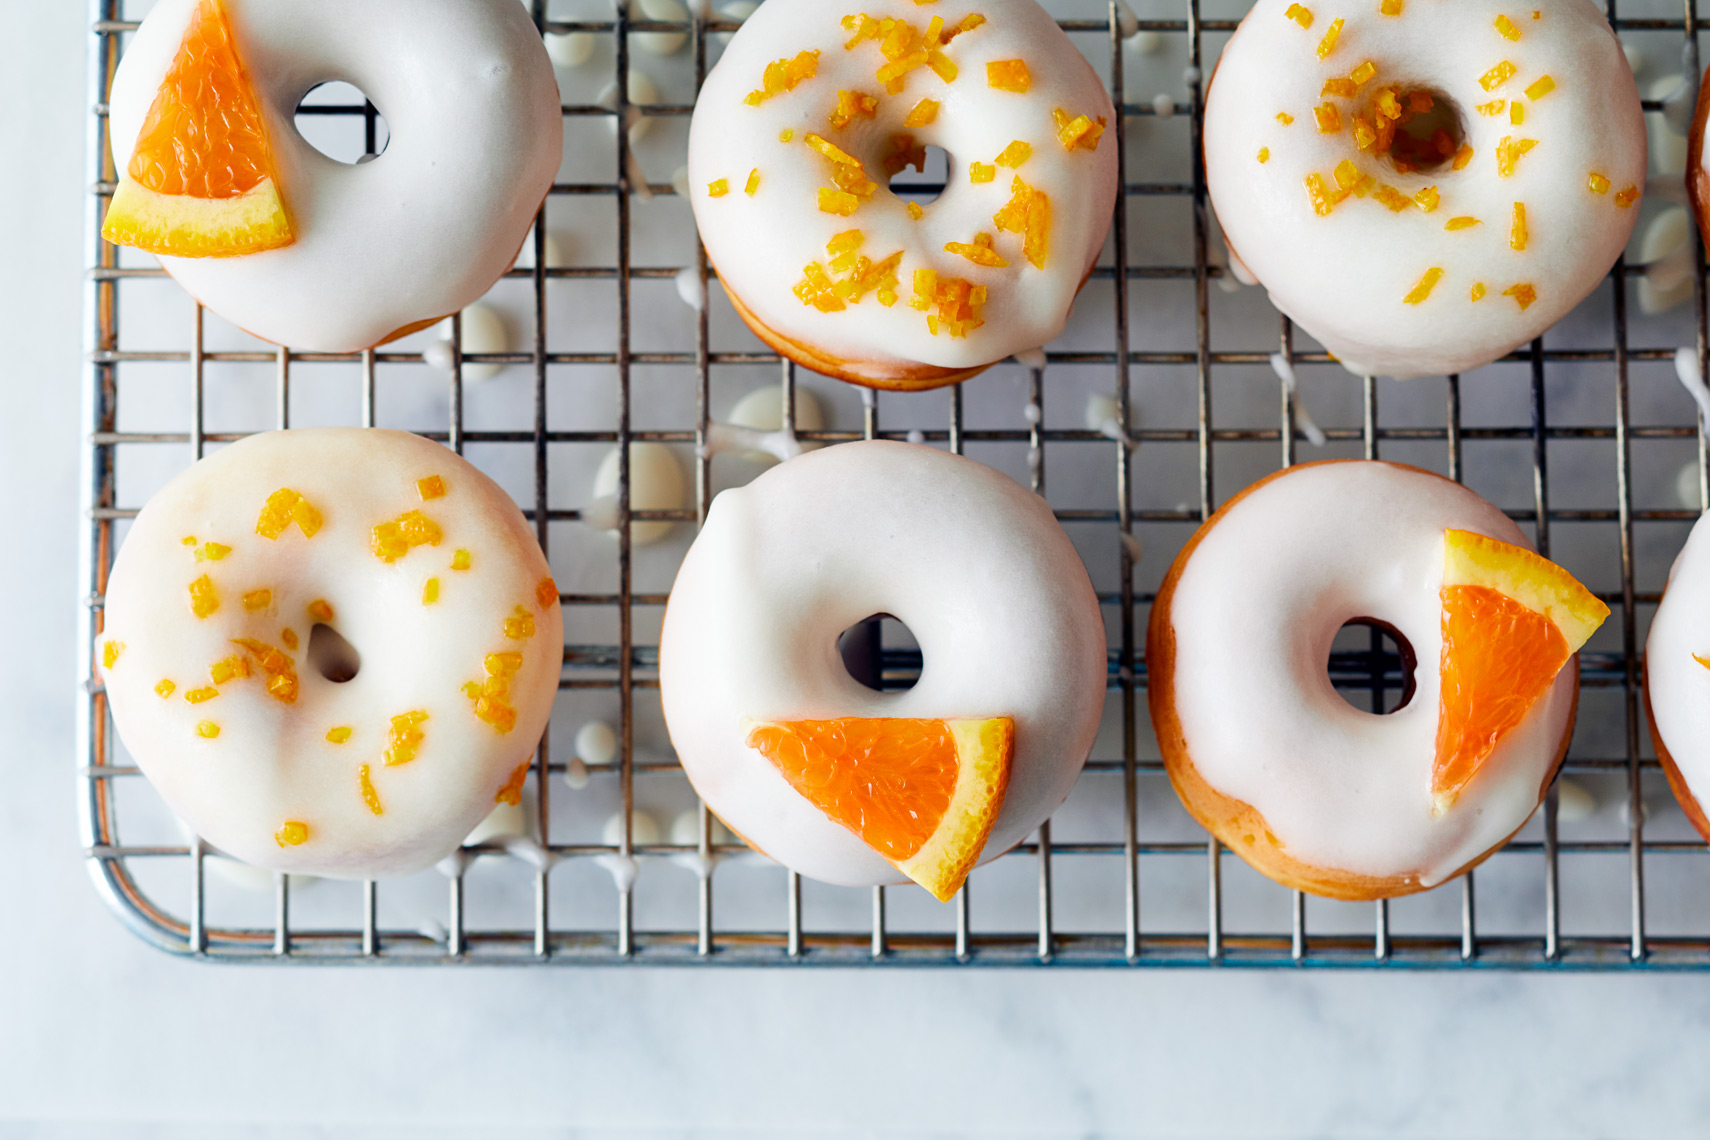 Cara_Cara_Navel_Orange_Yogurt_Donuts_01web